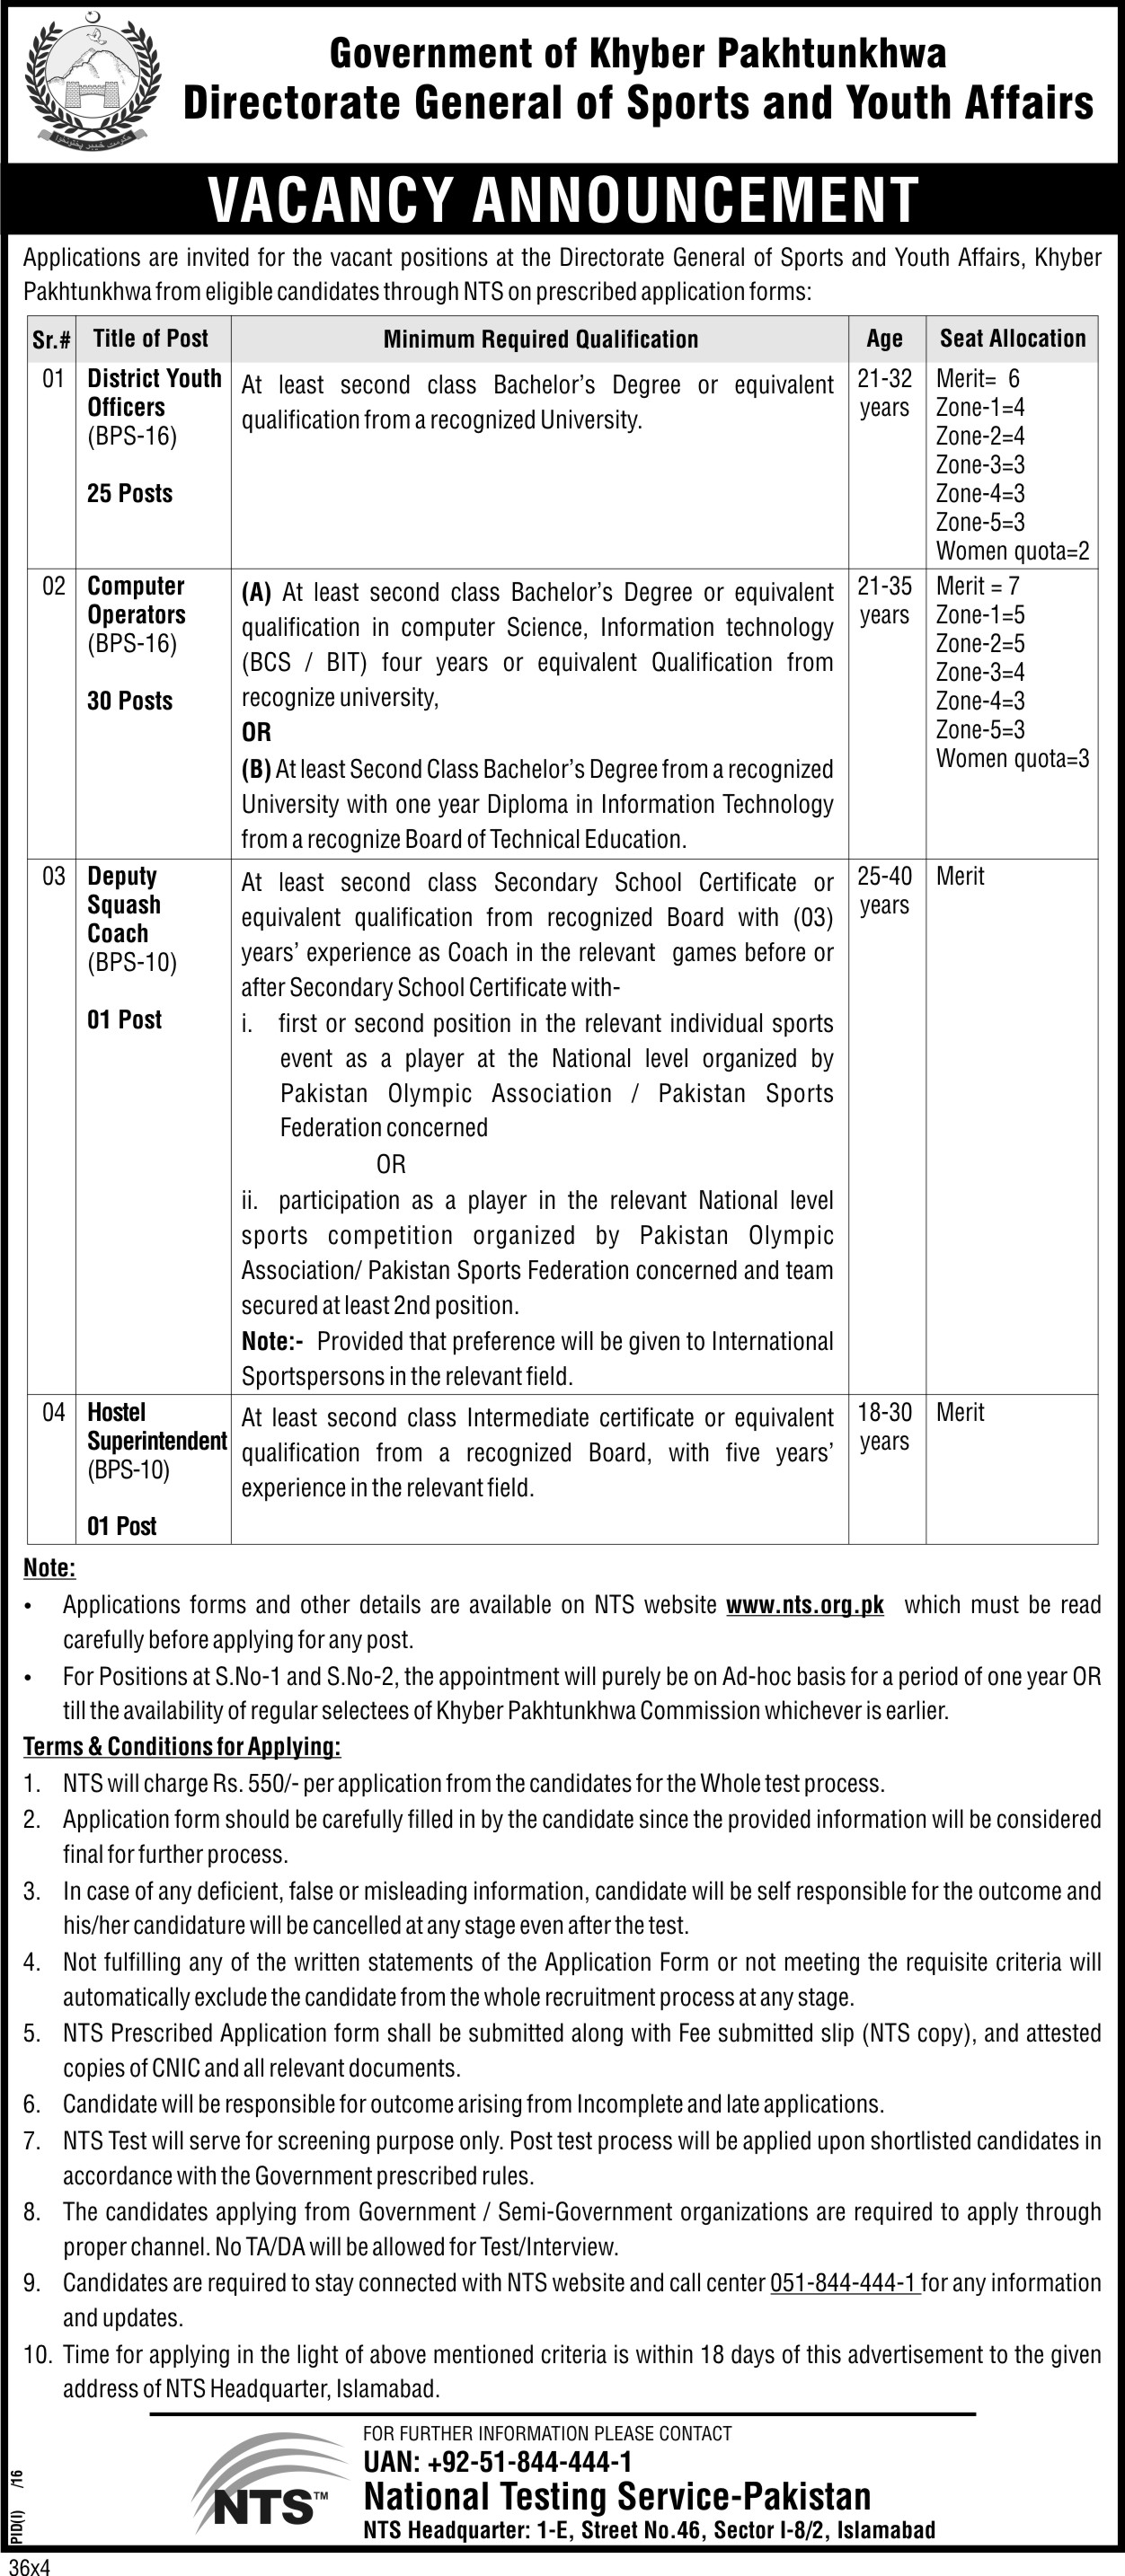 Directorate General of Sports & Youth Affairs KPK Jobs NTS Roll Number Slip, Result 2017